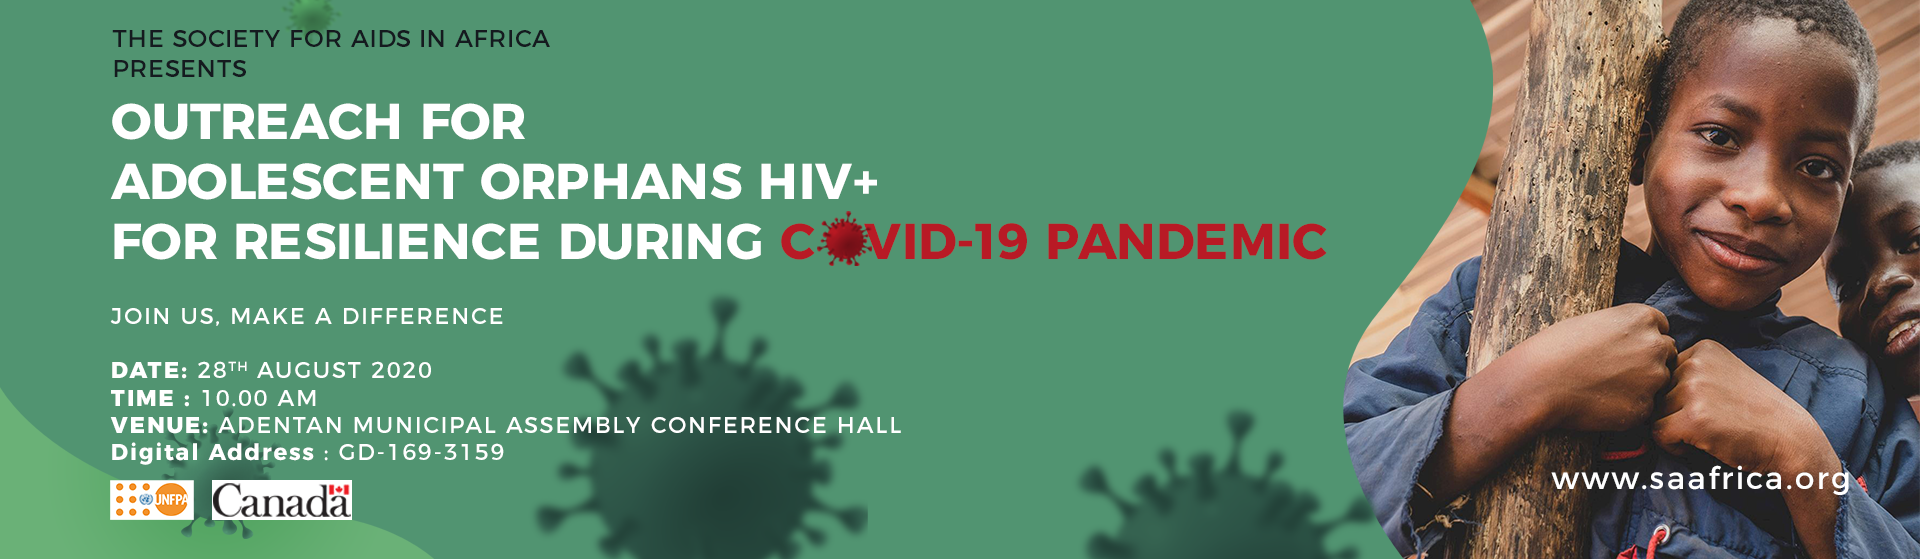 OUTREACH FOR ADOLESCENT ORPHANS HIV+ FOR RESILIENCE DURING COVID-19 PANDEMIC